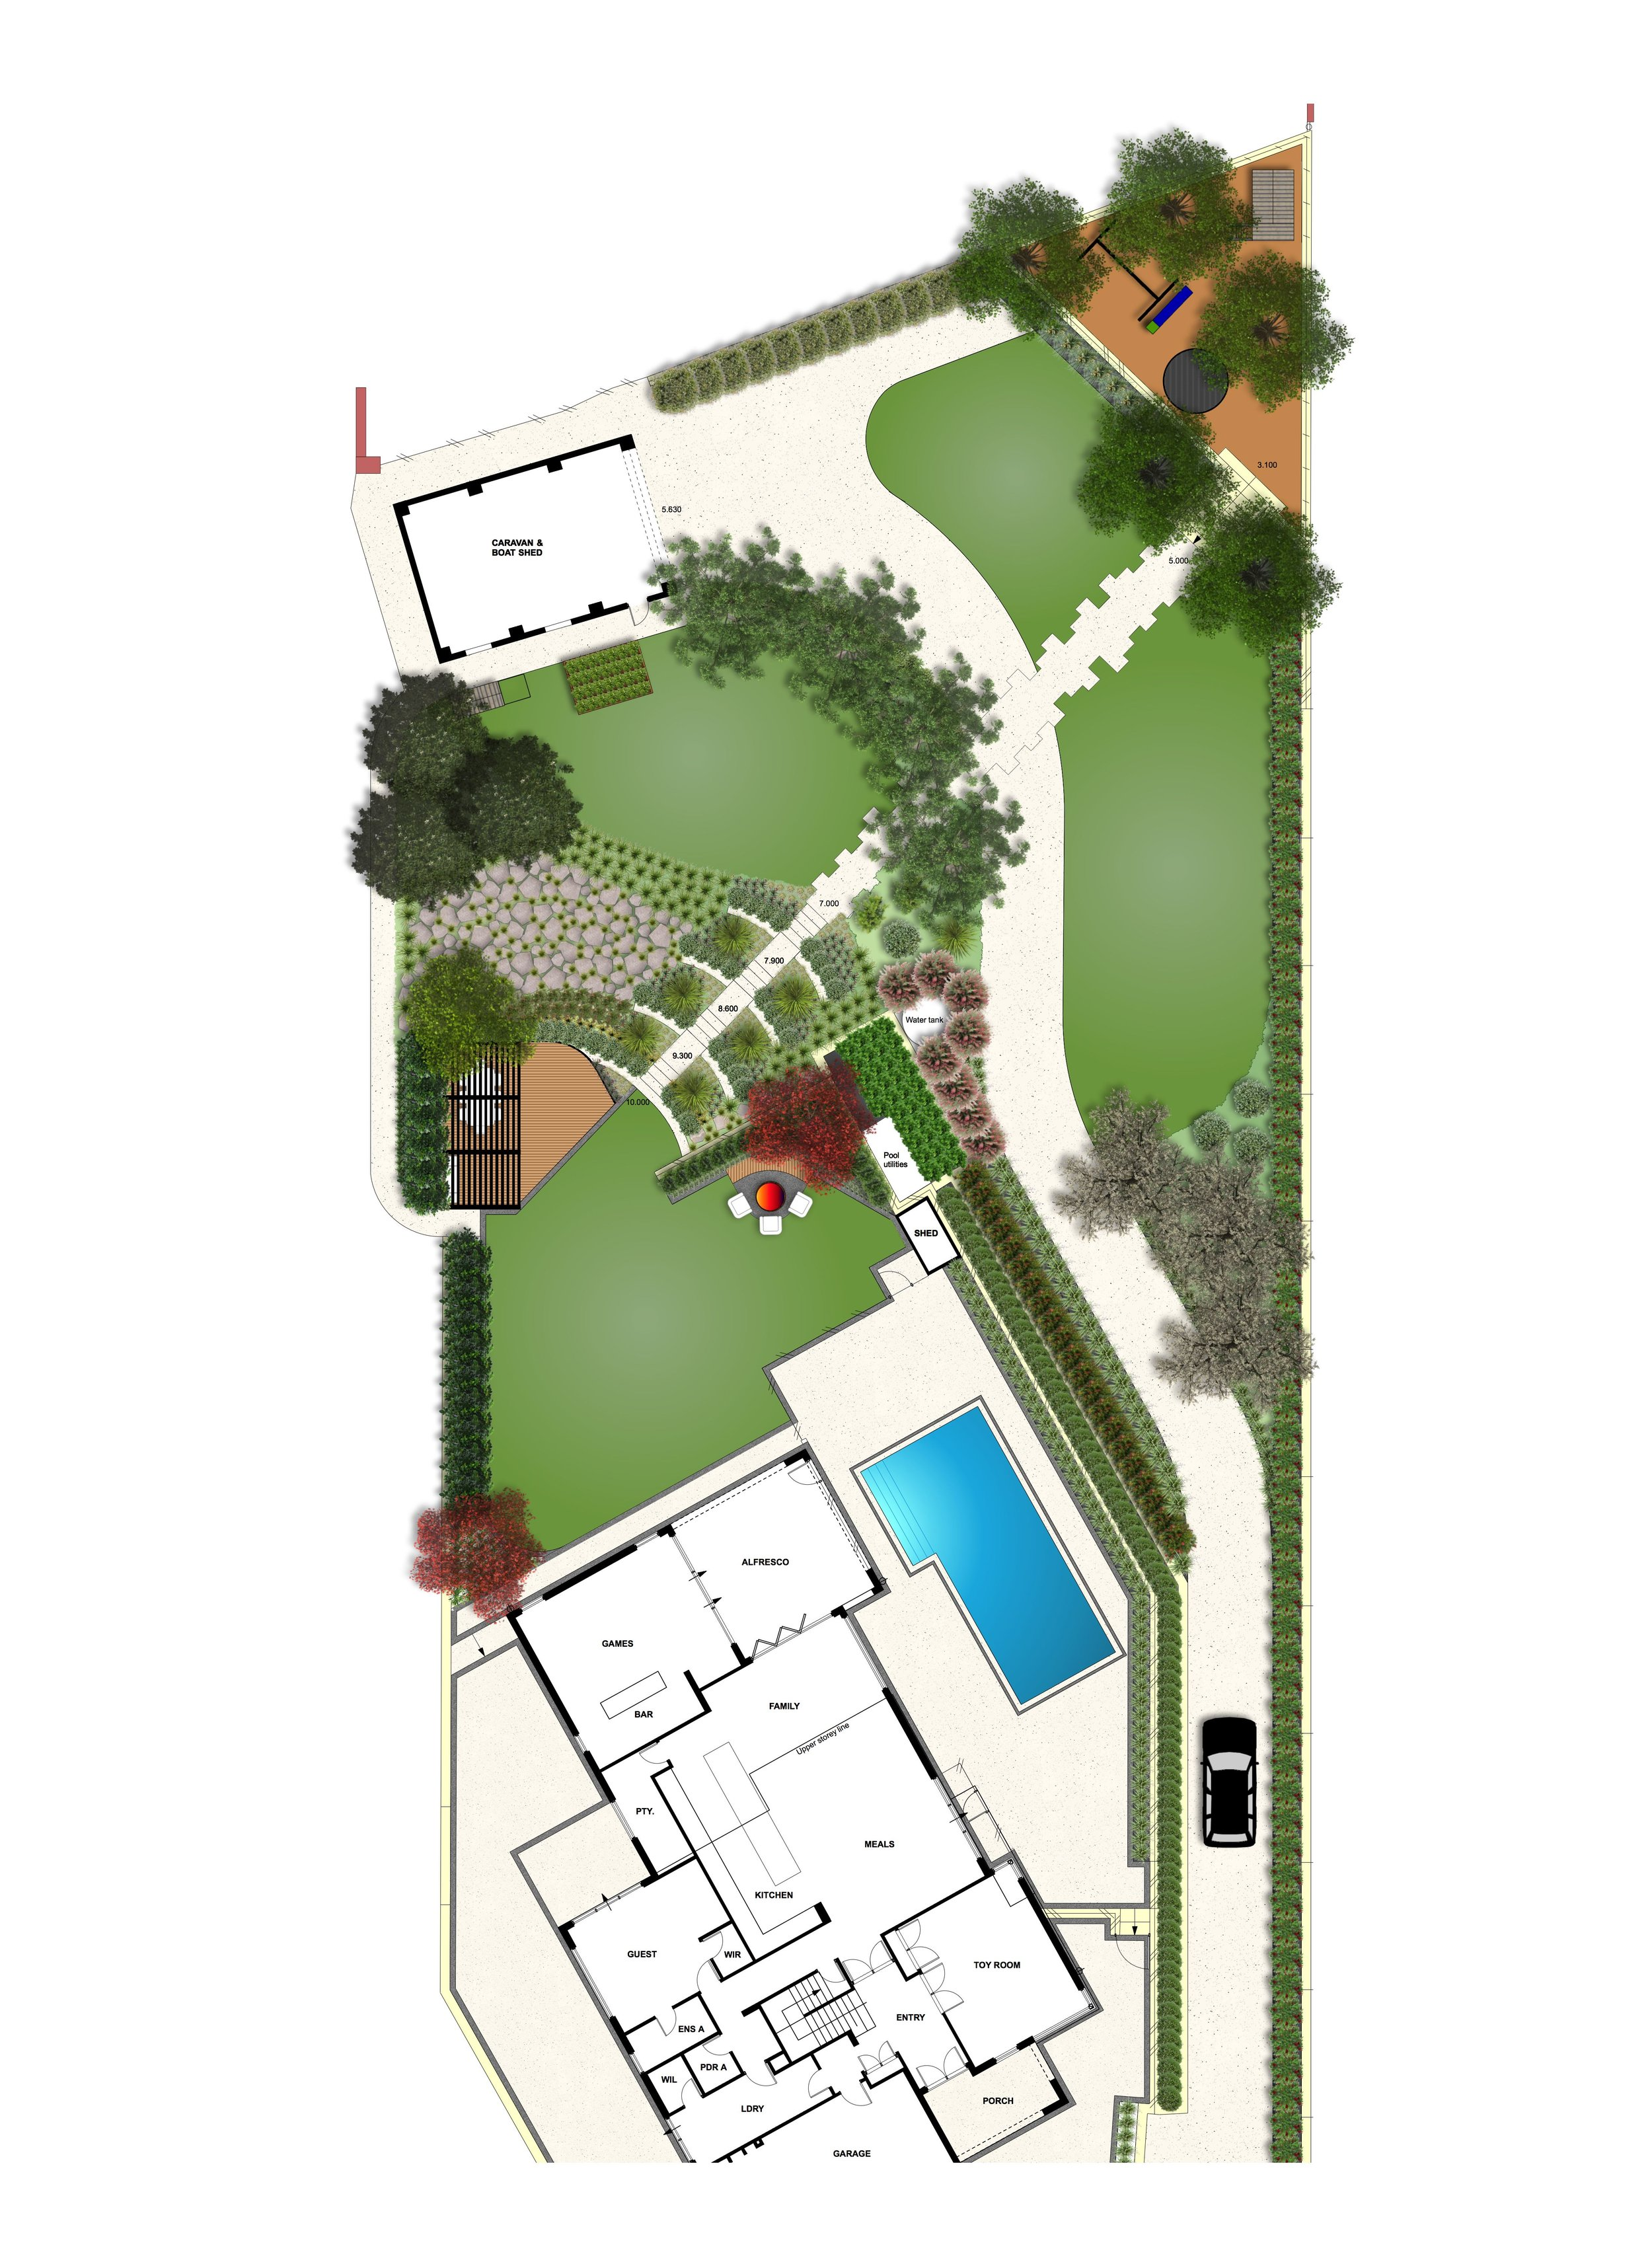 A Perth Hills site including a timber deck, pergola, fire pit, rustic rock pitching and limestone steps. Productive gardens, a children's play space and water-wise native plantings are also featured.